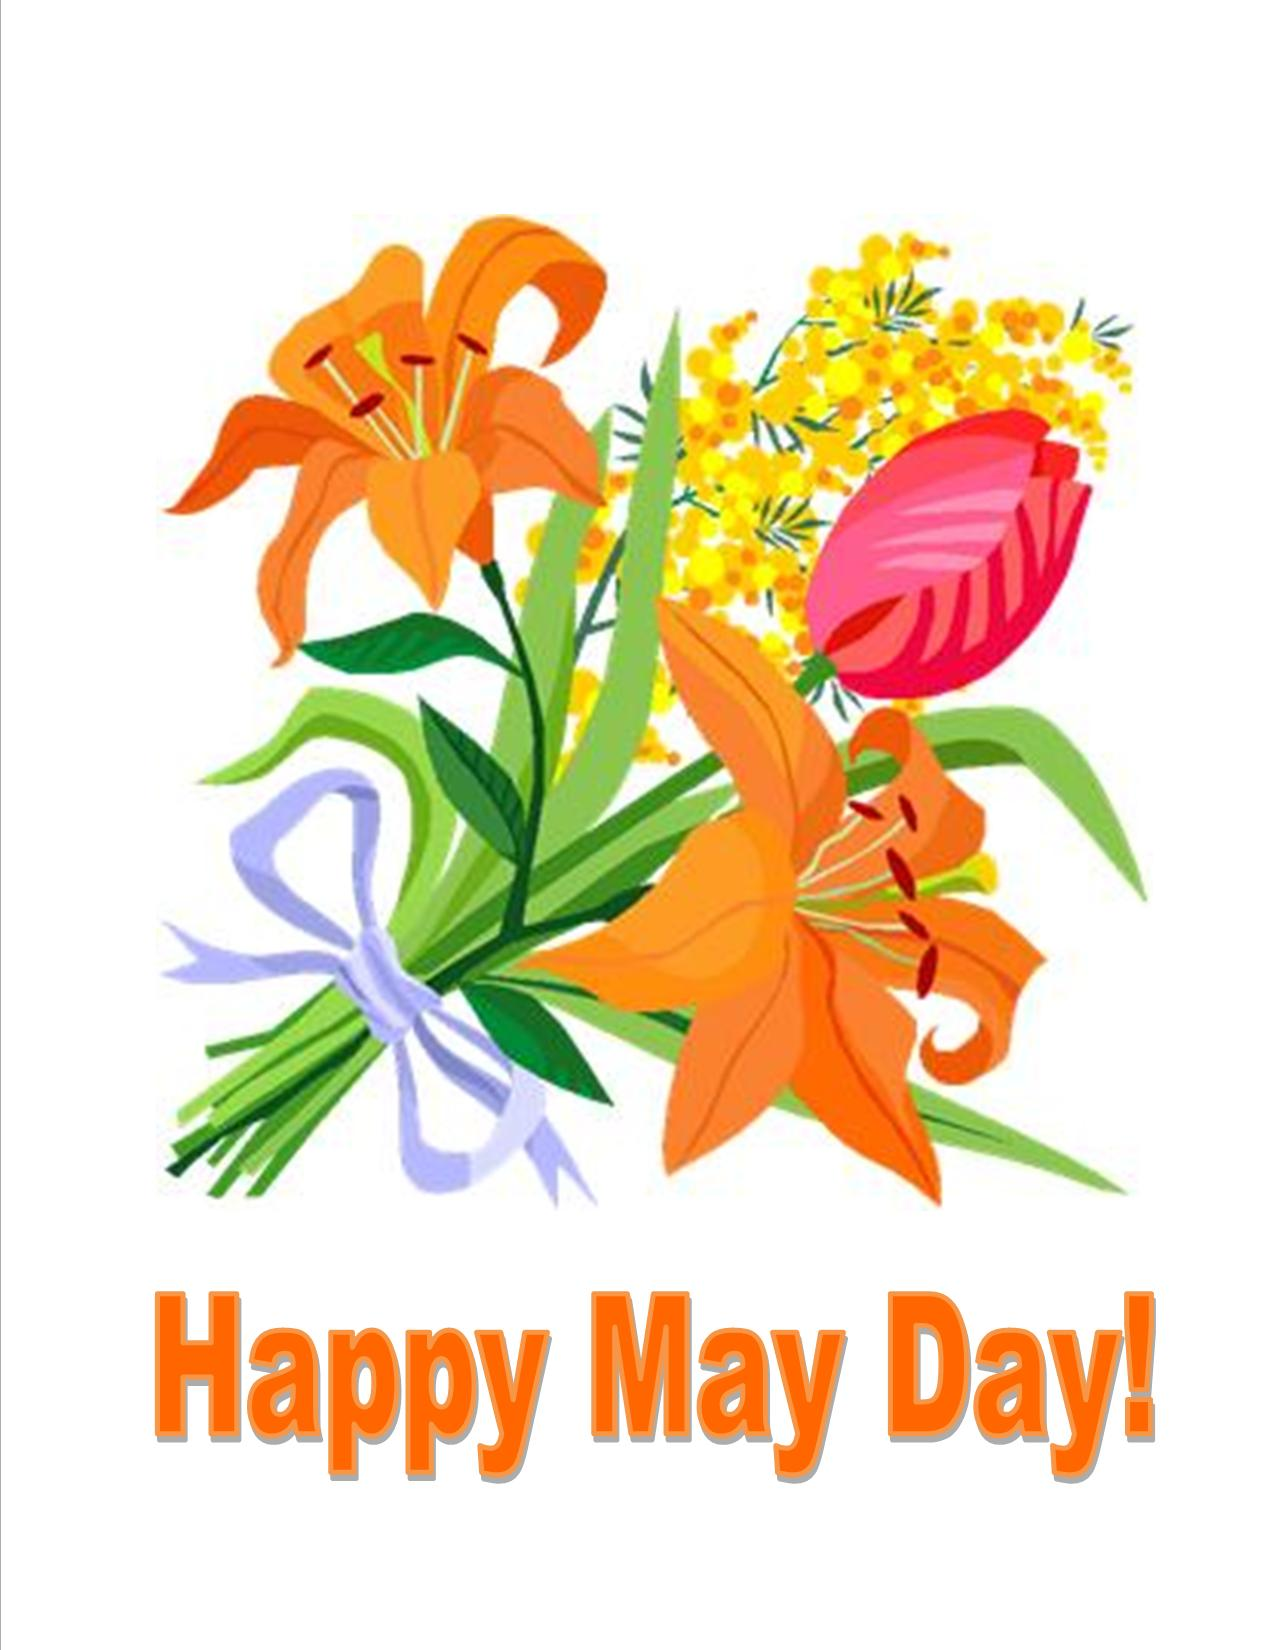 Happy May Day Images Free